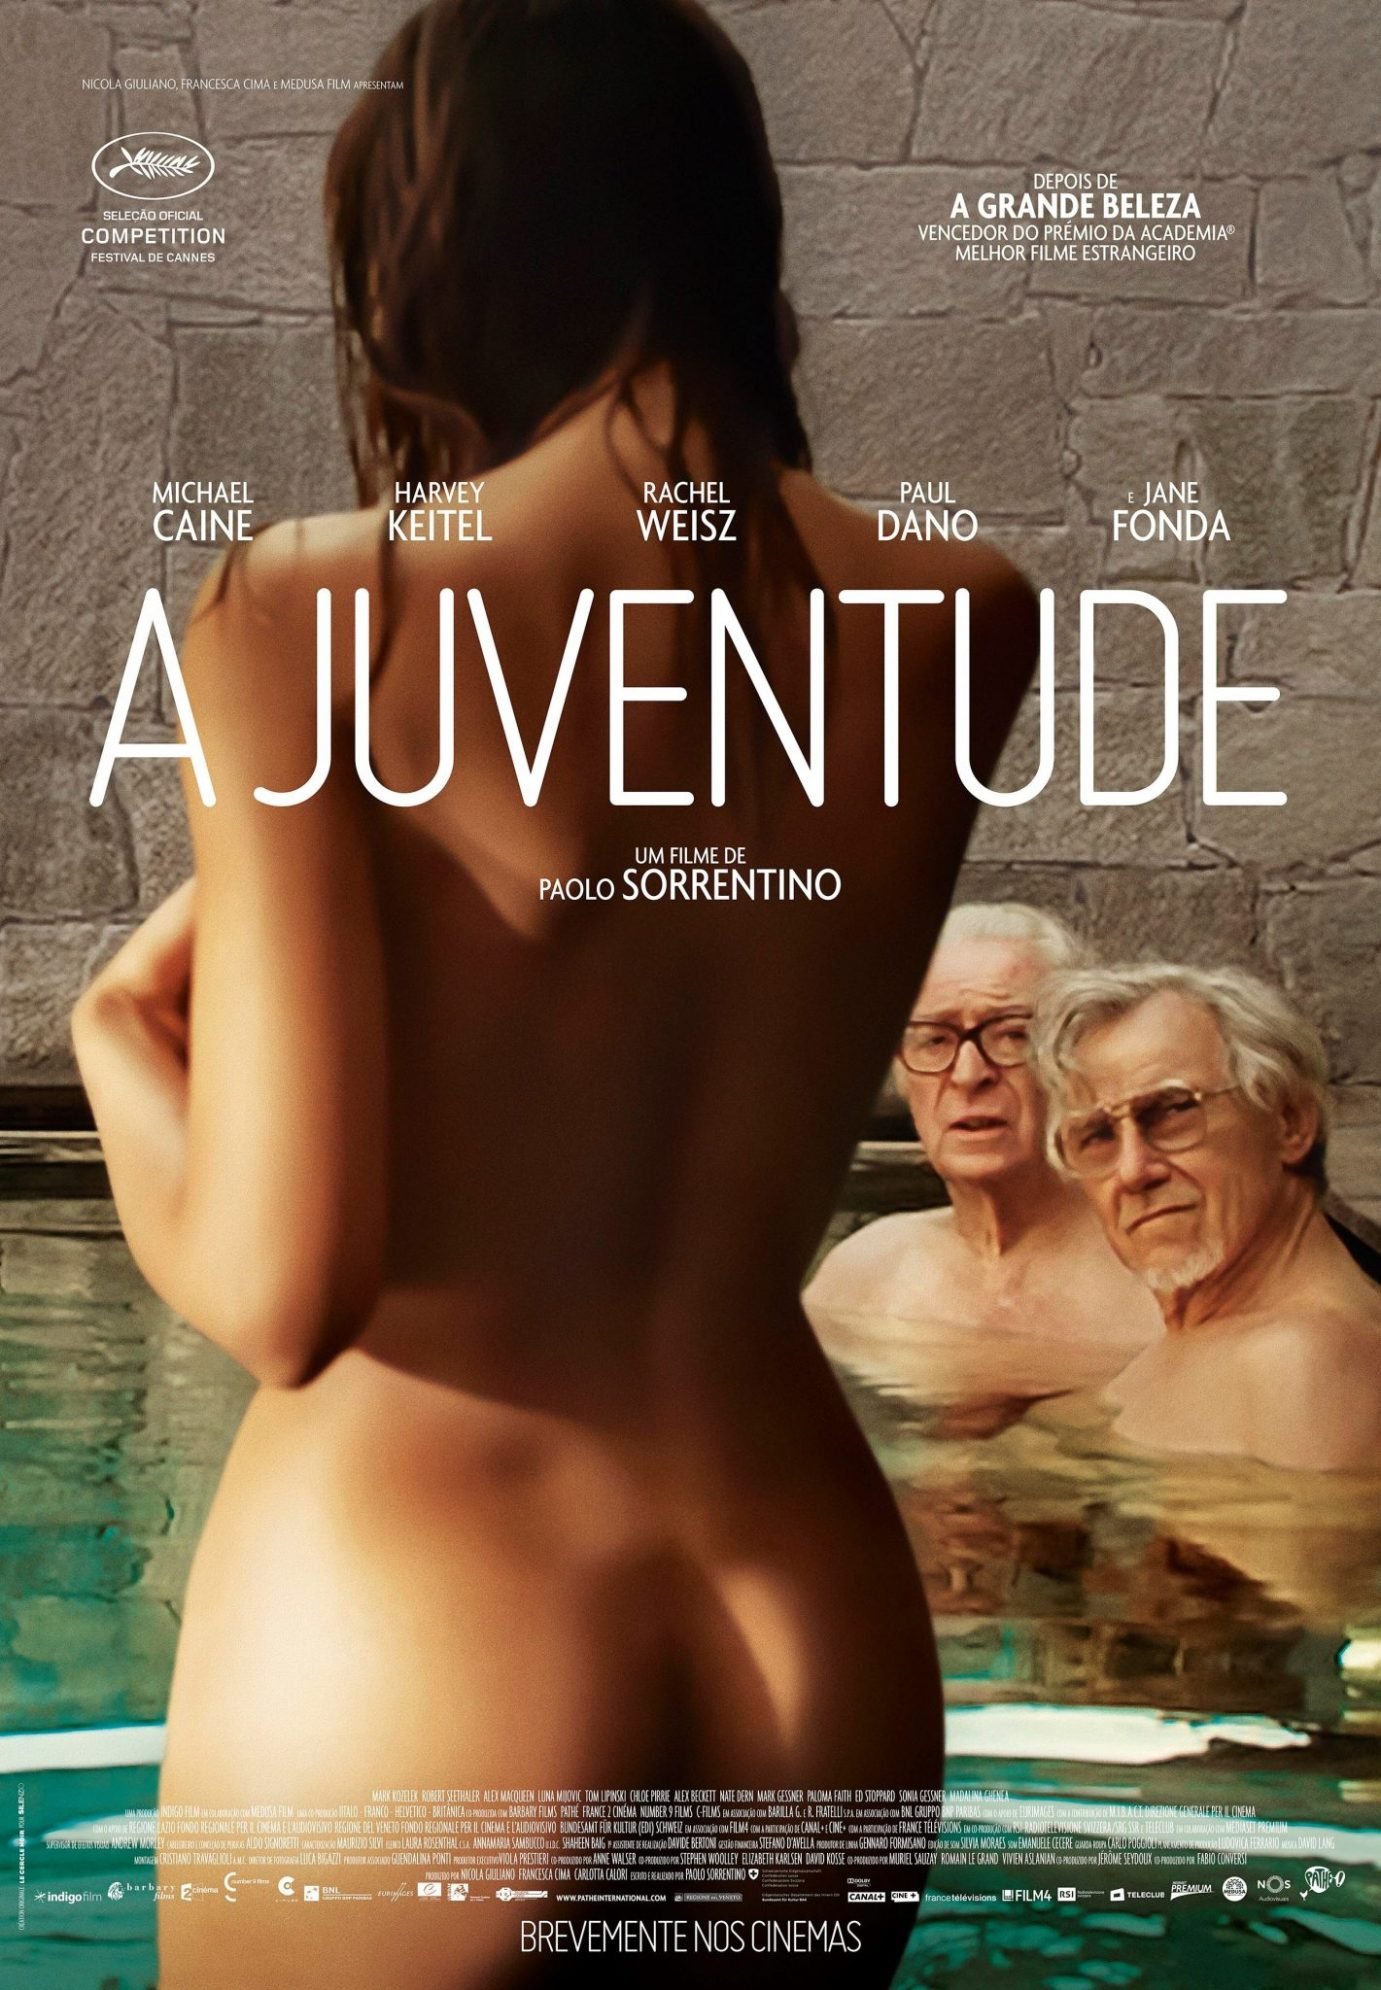 A Juventude (Poster)